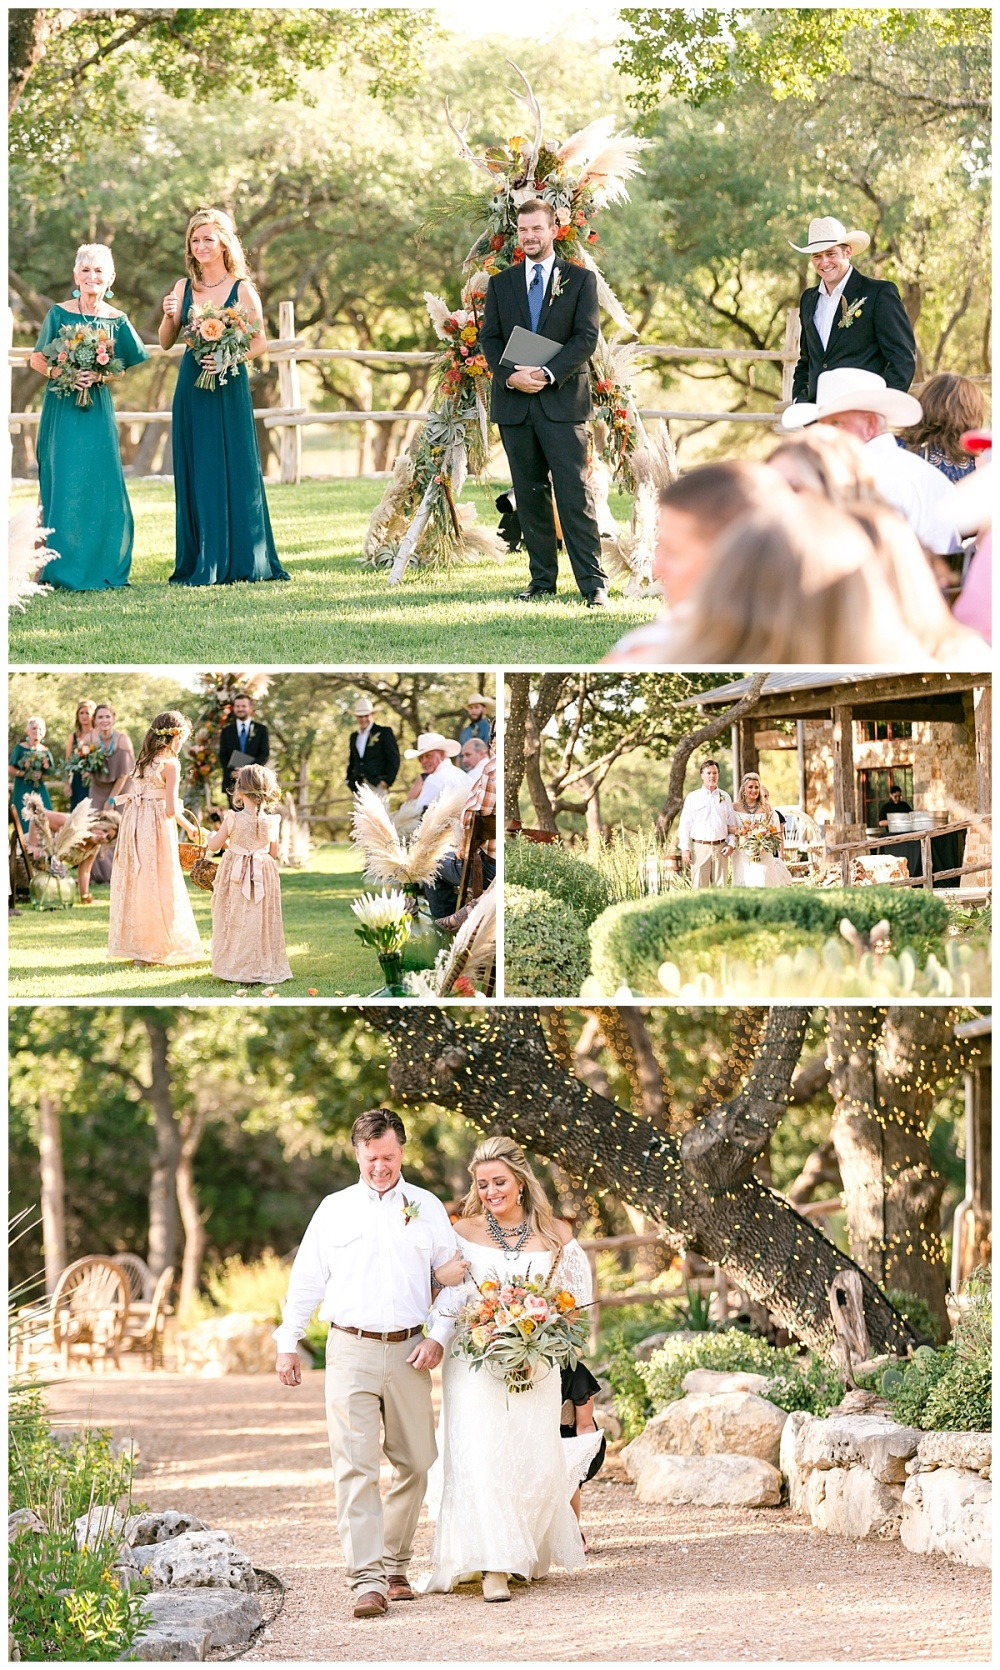 Texas-Wedding-Photographer-Braded-T-Ranch-Kendalia-Bride-Groom-Southwestern-Style-Carly-Barton-Photography-Vogt_0030.jpg